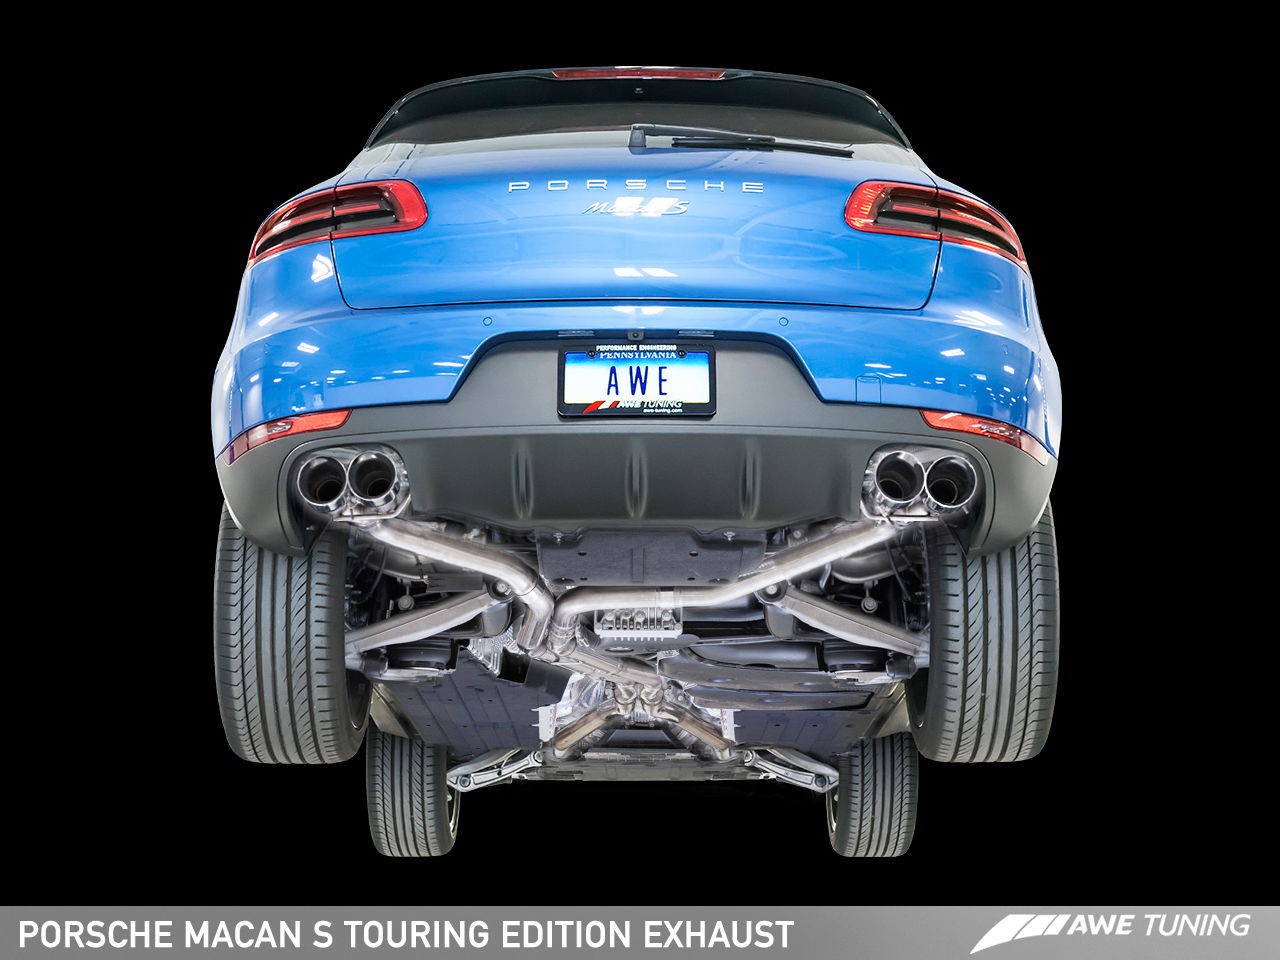 introducing the awe tuning porsche macan exhaust suite. Black Bedroom Furniture Sets. Home Design Ideas